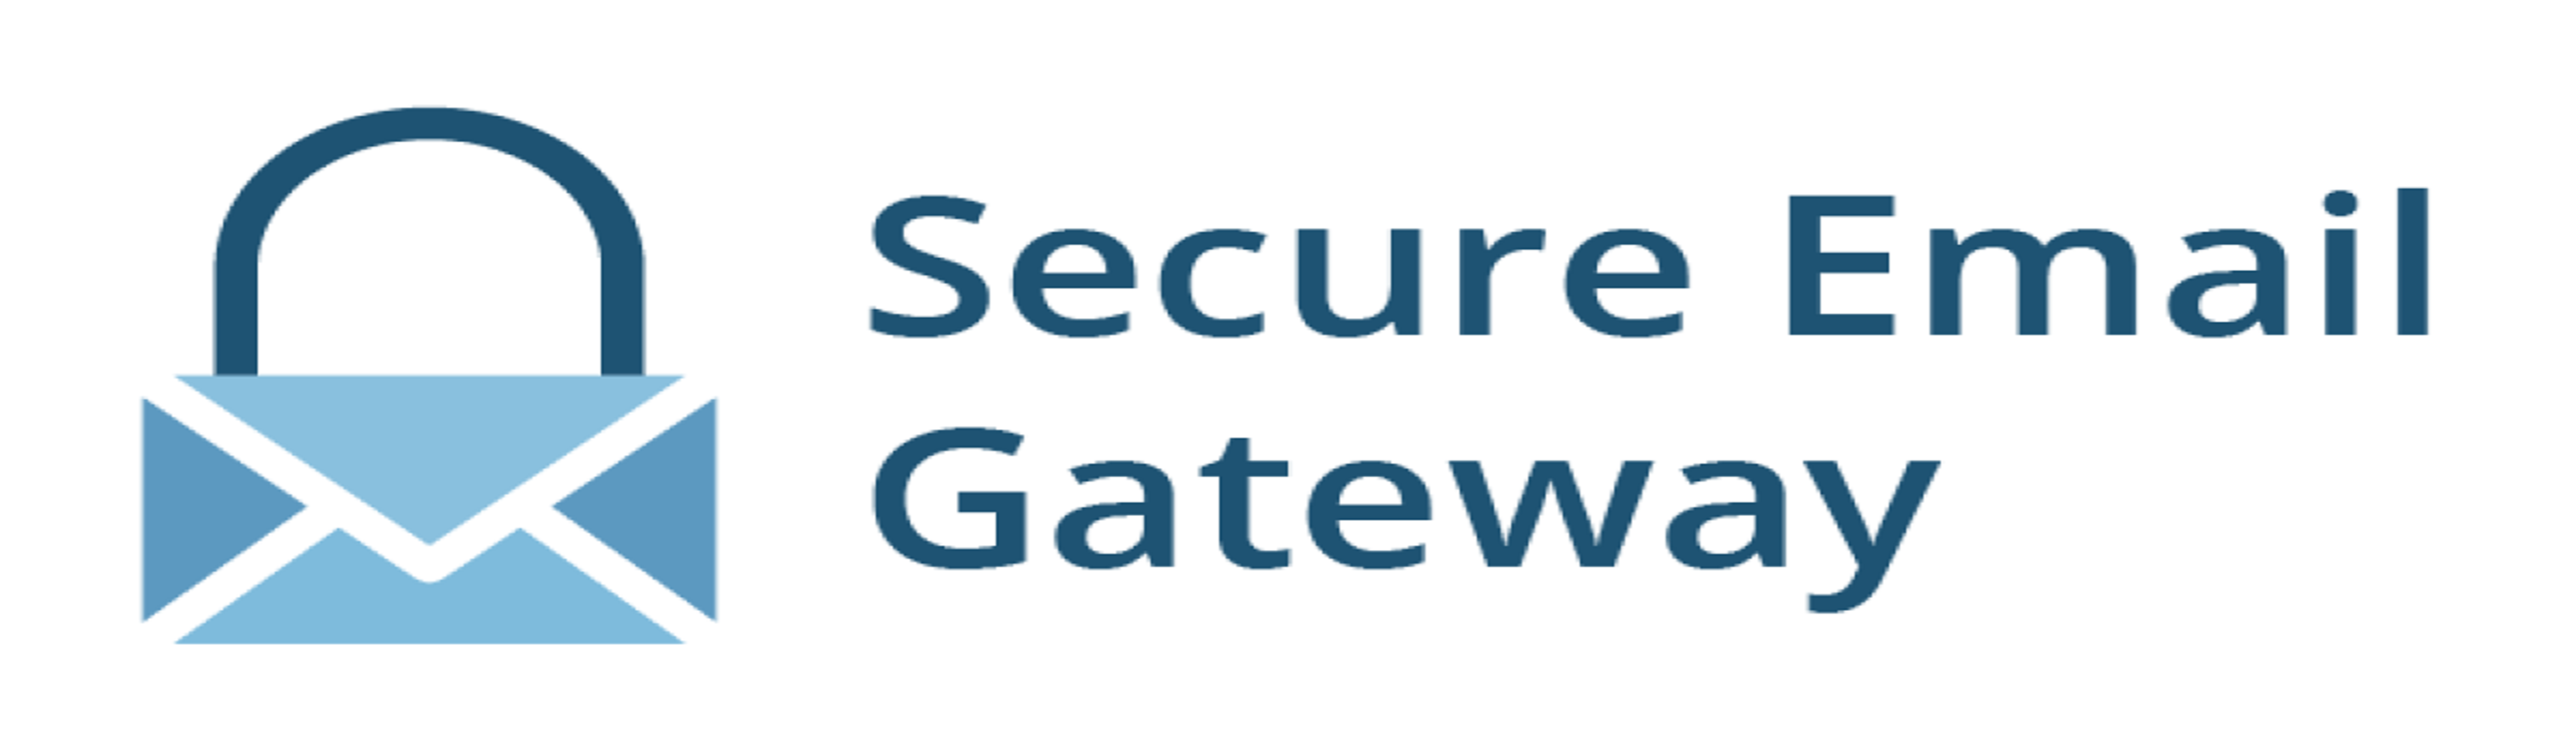 Secure Email Gateway Market Next Big Thing | Major Giants Cisco Systems, Symantec, Mimecast Services